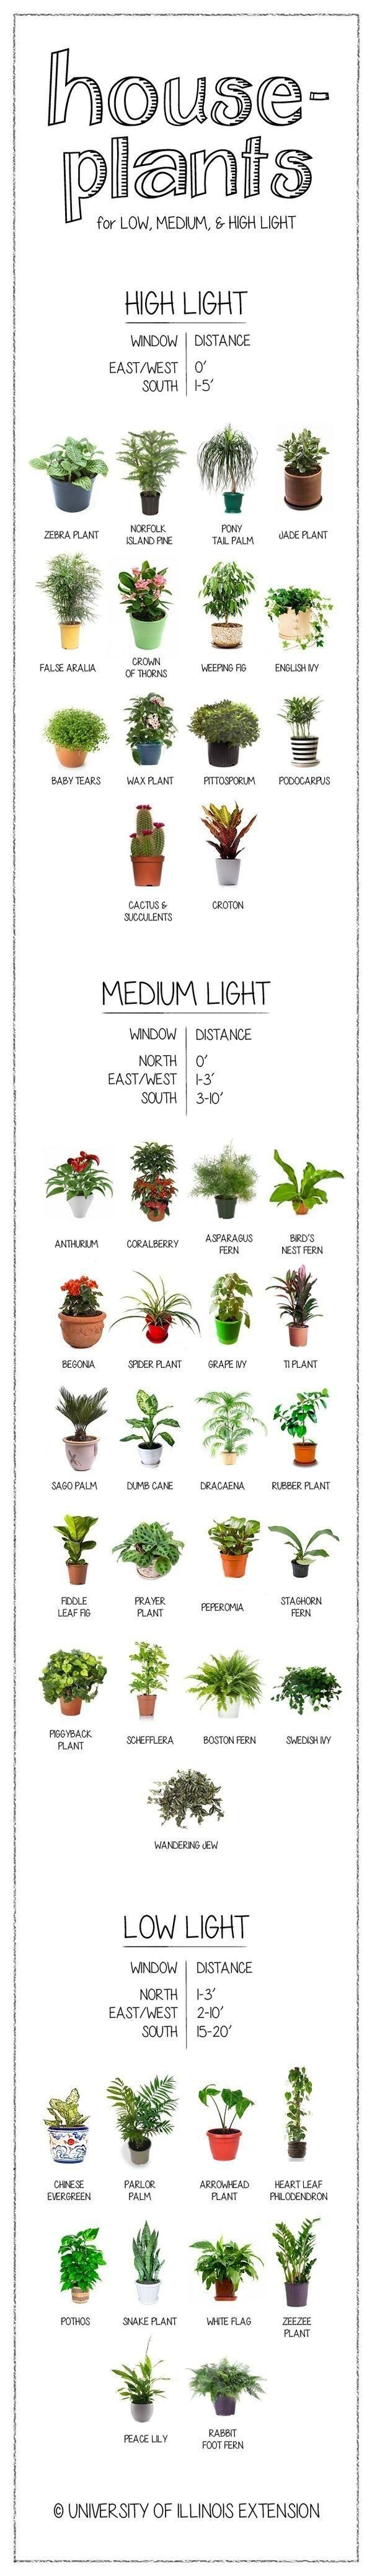 Delightful 23 Diagrams That Make Gardening So Much Easier ~ So Useful Right Now: A  Visual Guide To Houseplants, According To Their Need For Light.